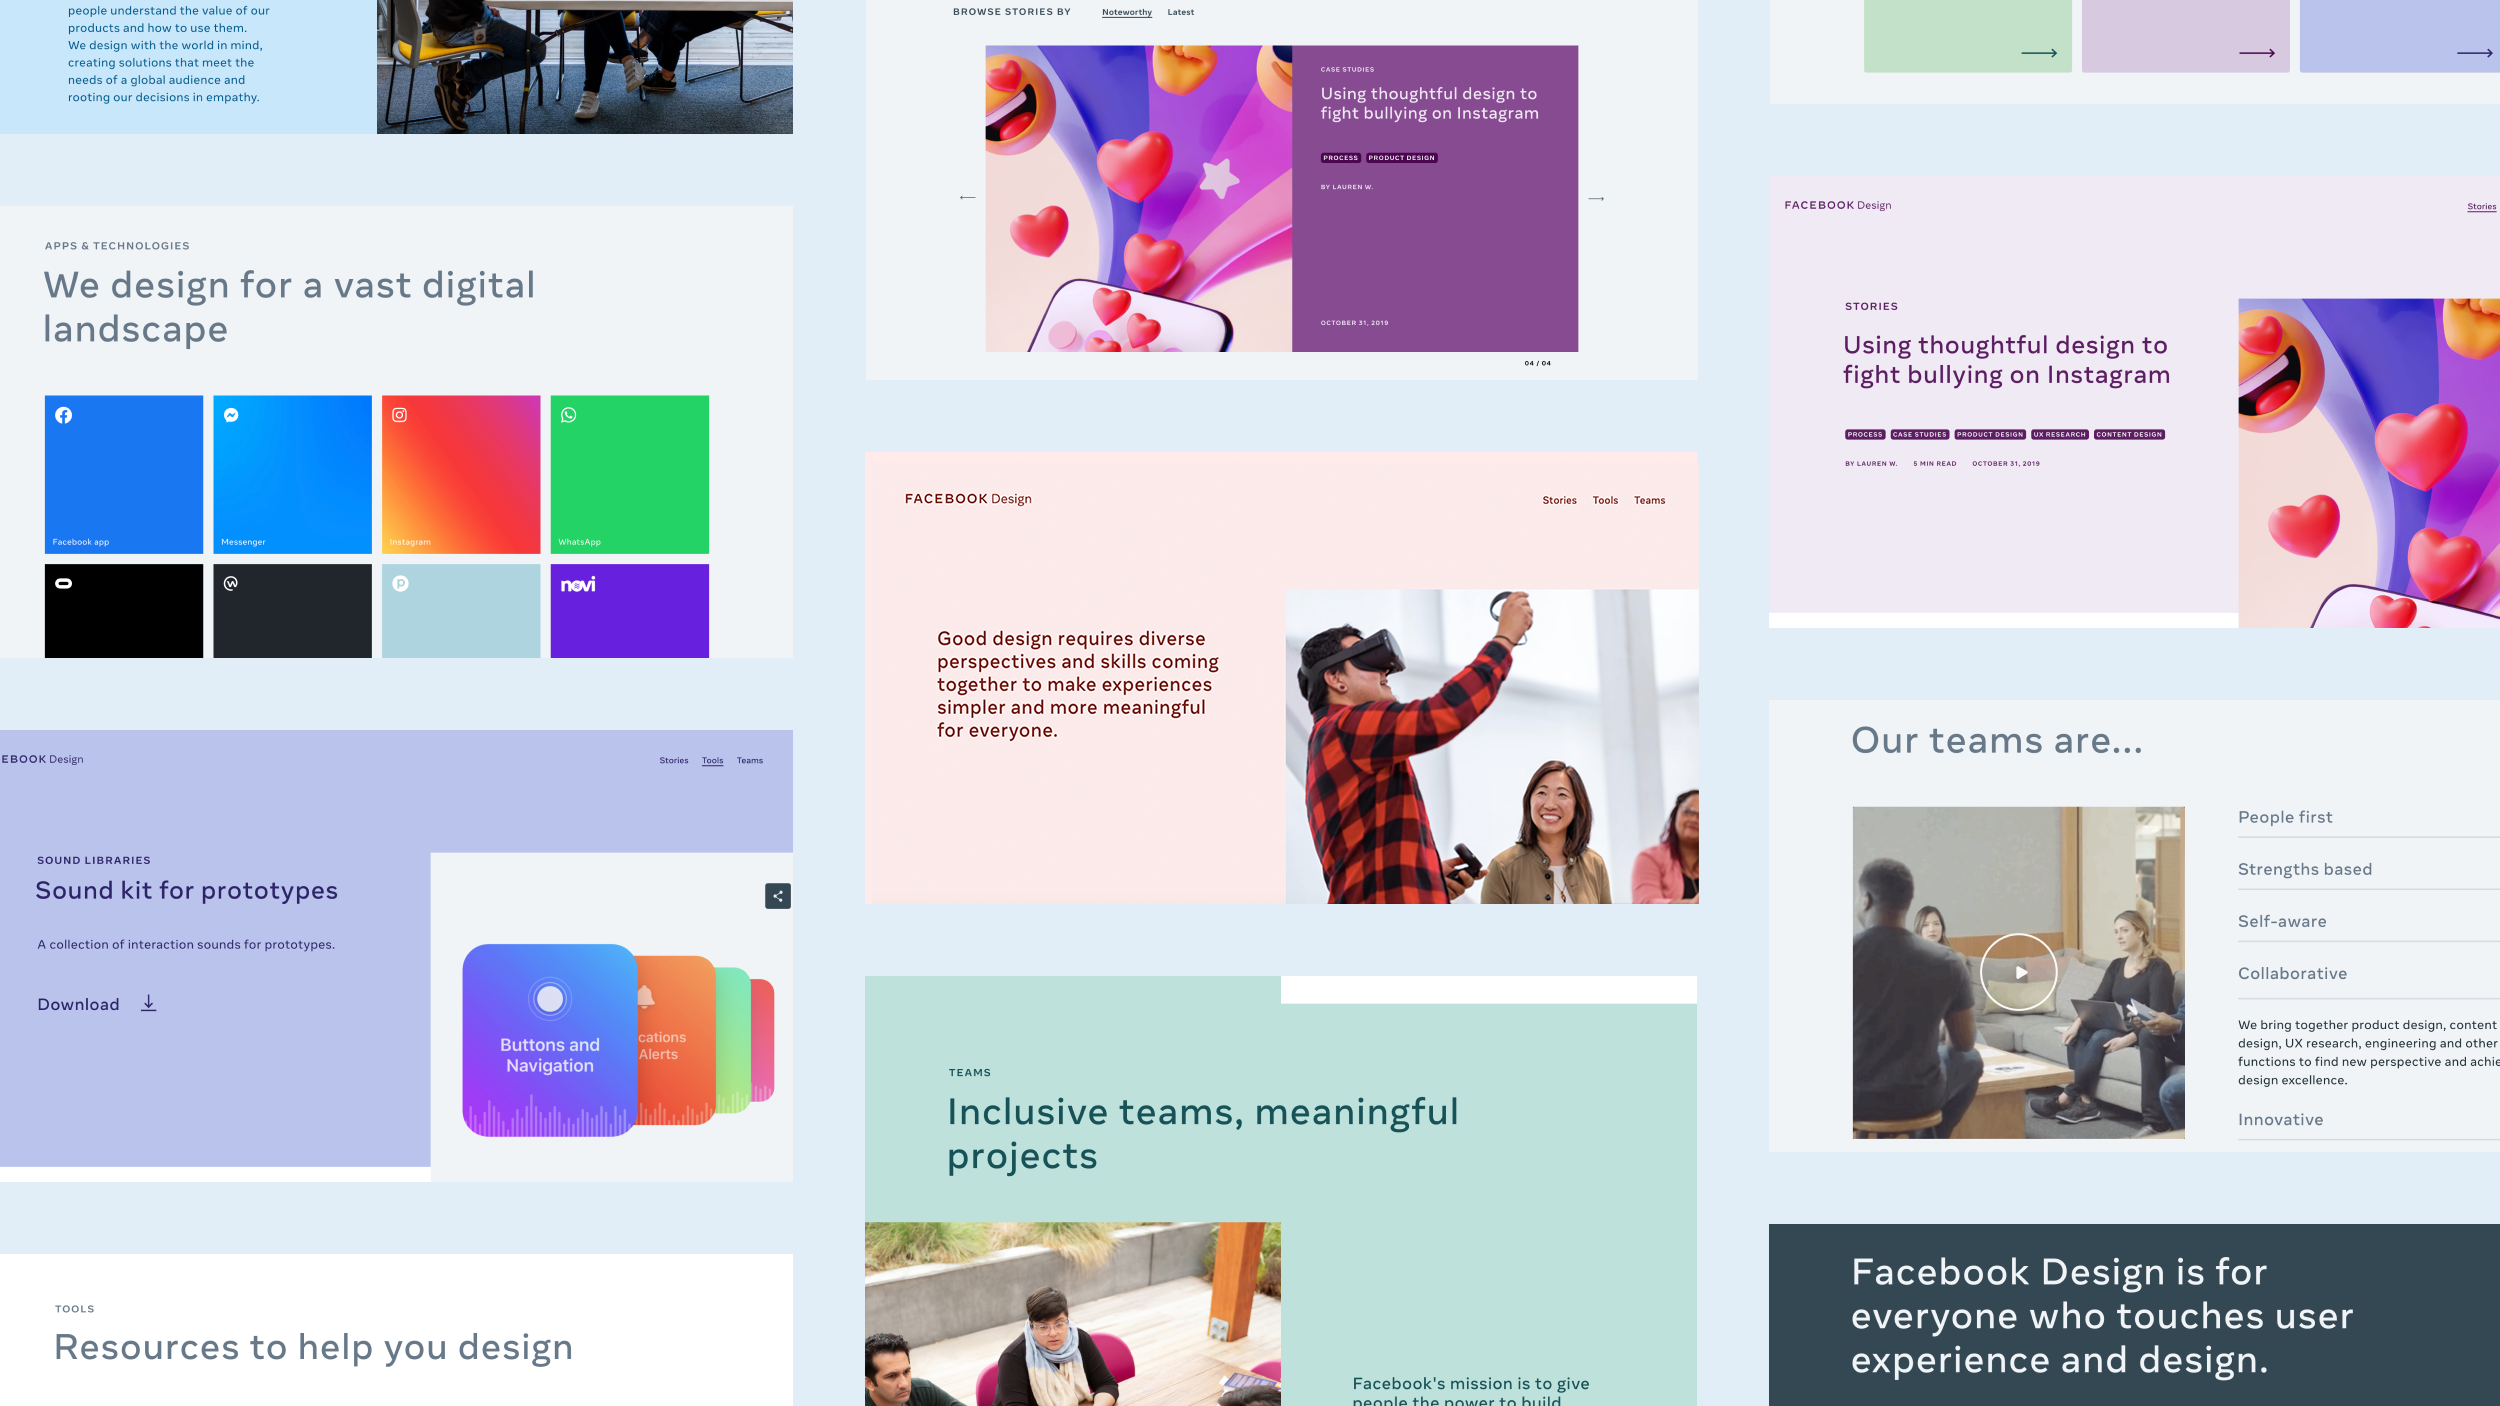 A montage of pages from the new Facebook Design site shows copy that expresses inclusivity and images showing diverse people